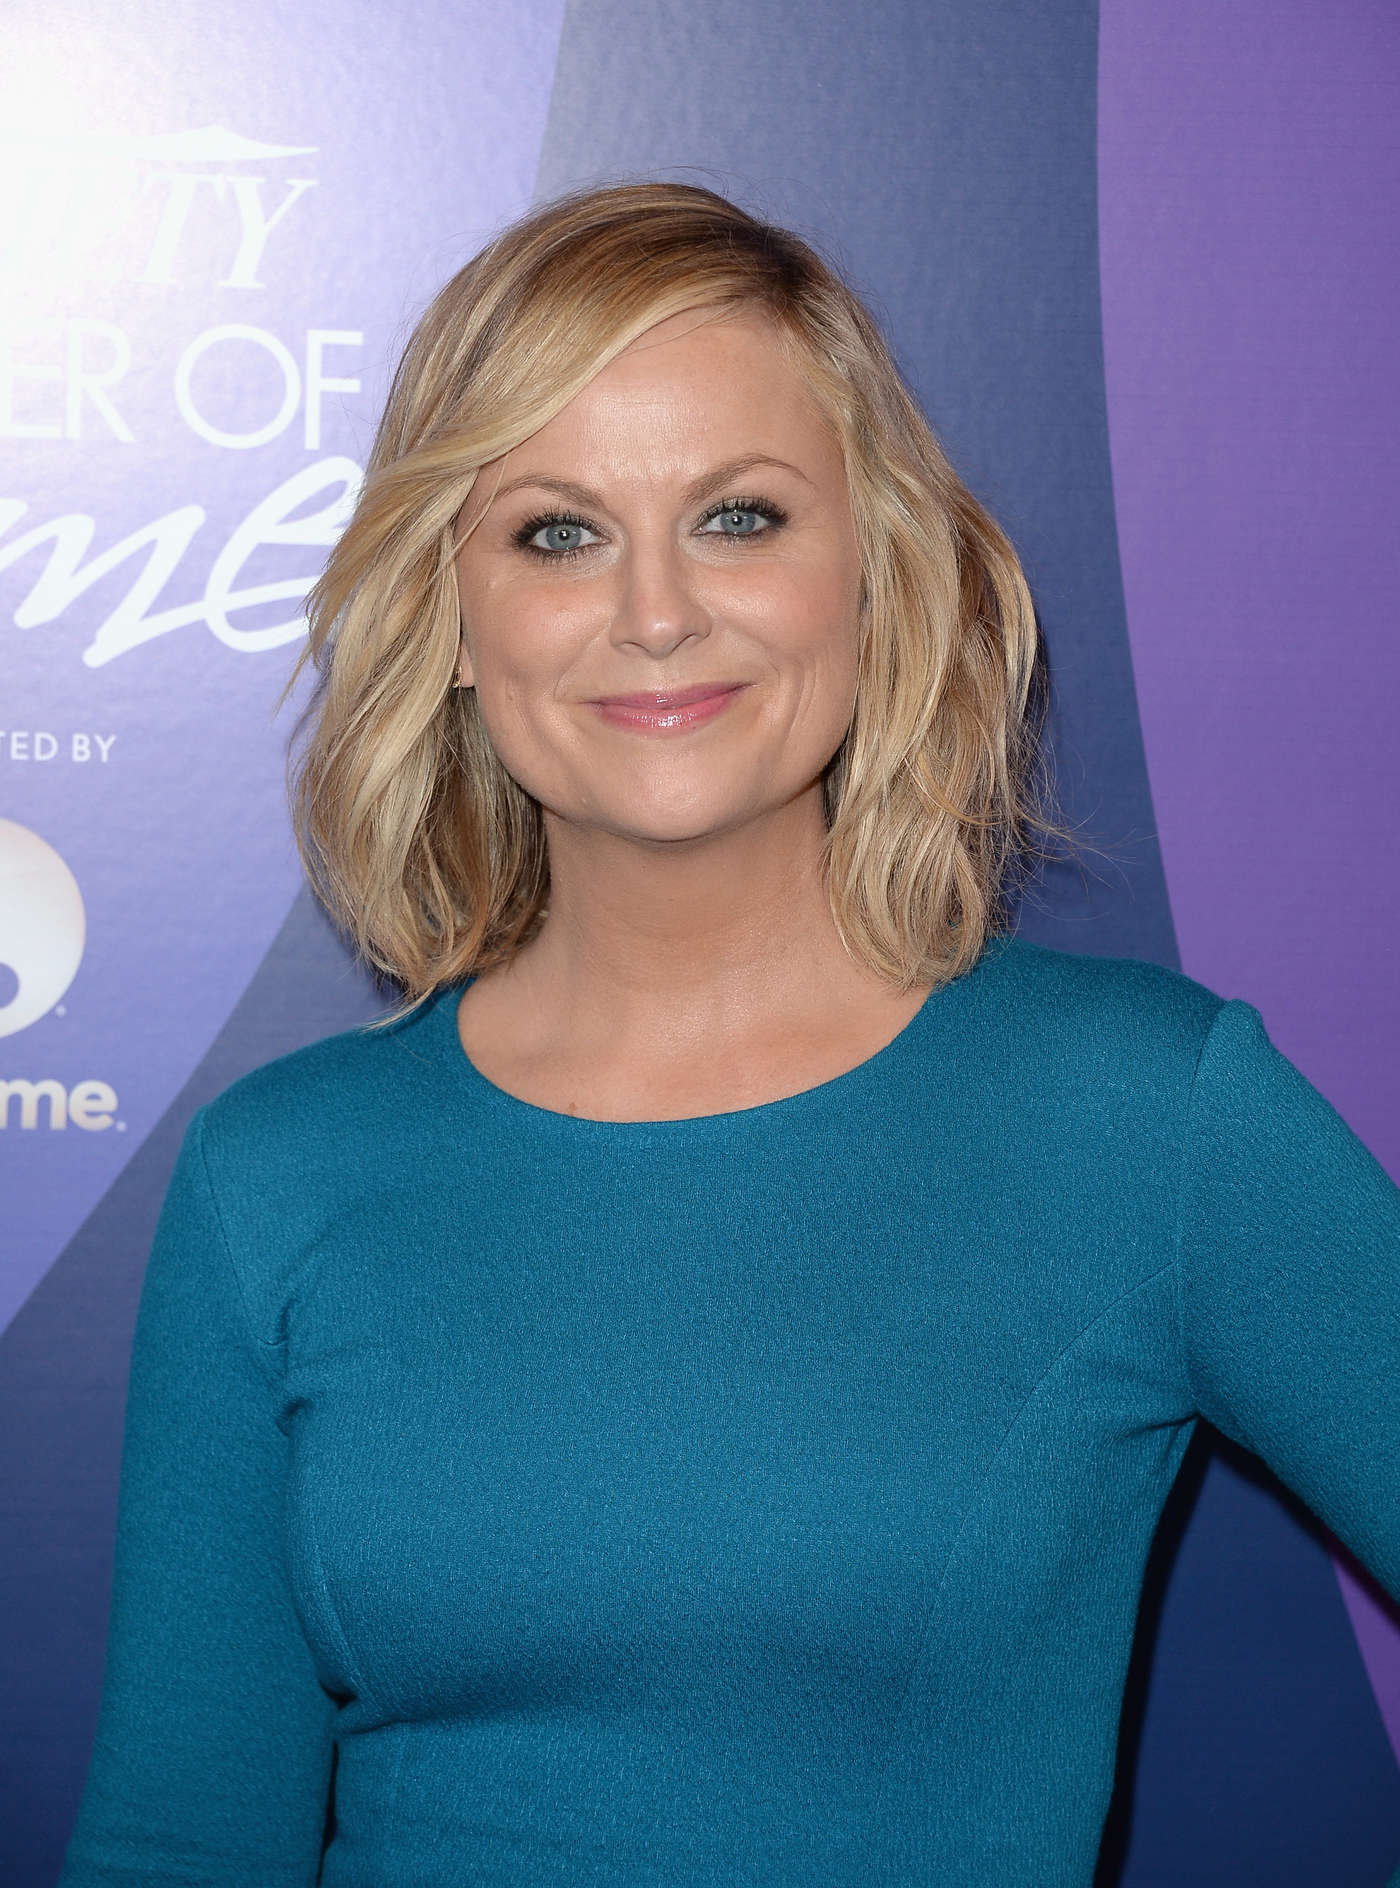 Amy Poehler Varietys Annual Power of Women Event in Beverly Hills